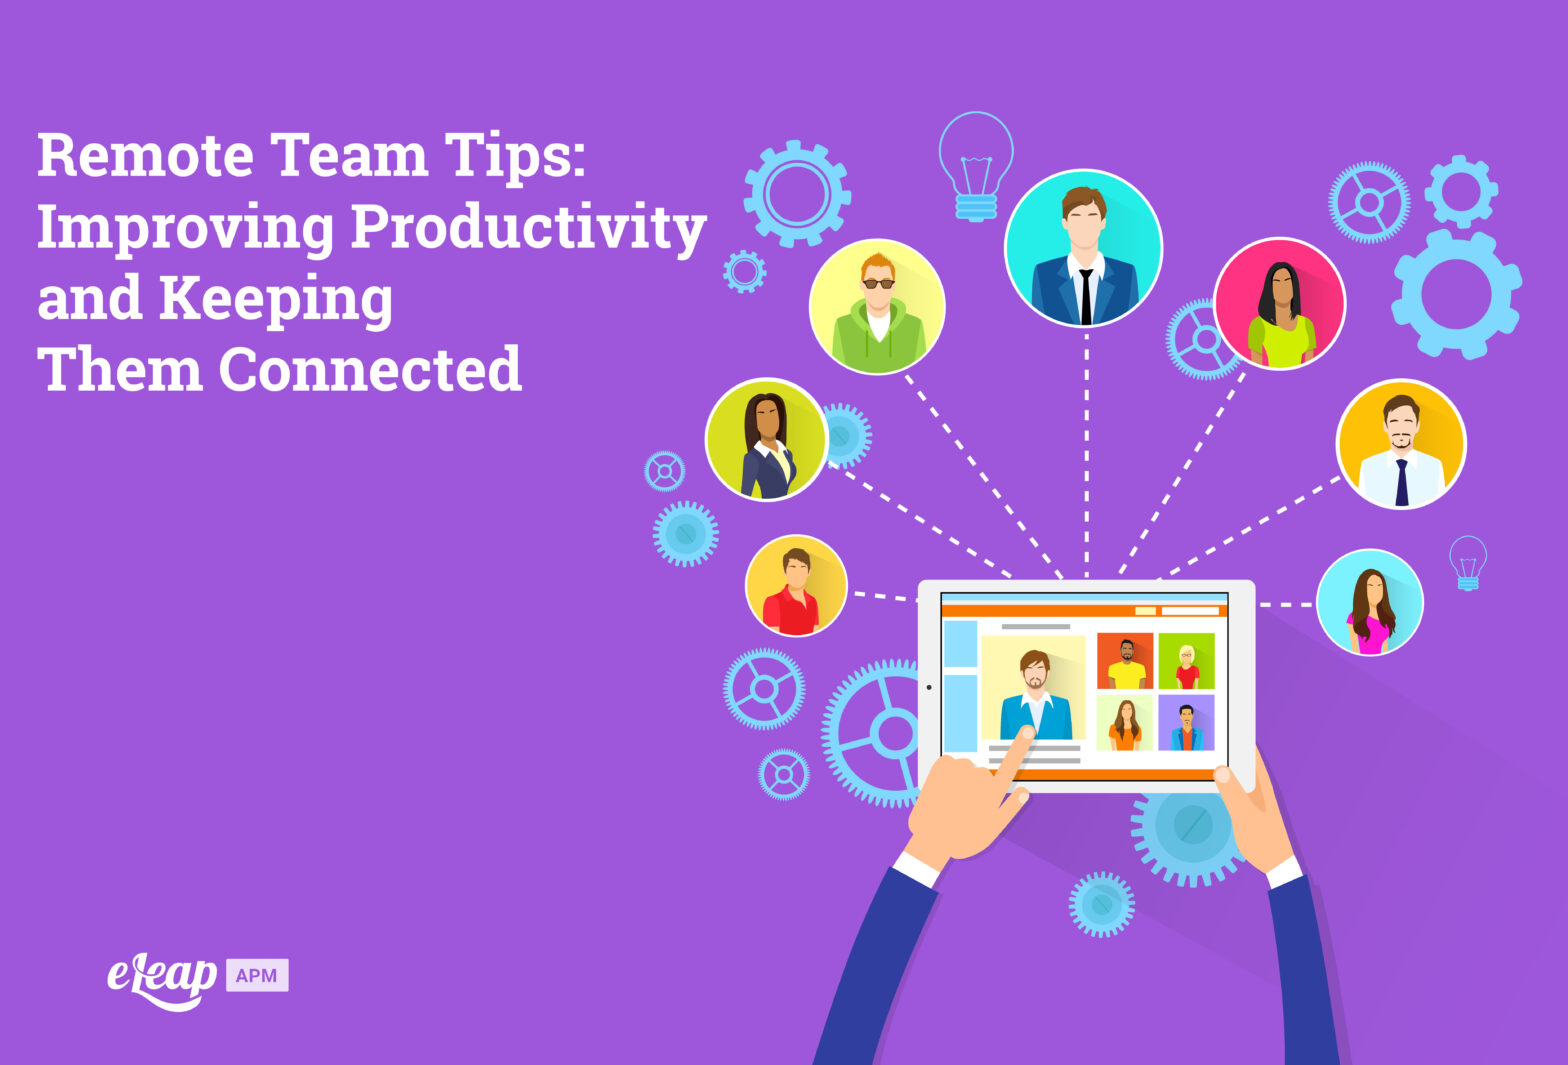 Remote Team Tips: Improving Productivity and Keeping Them Connected